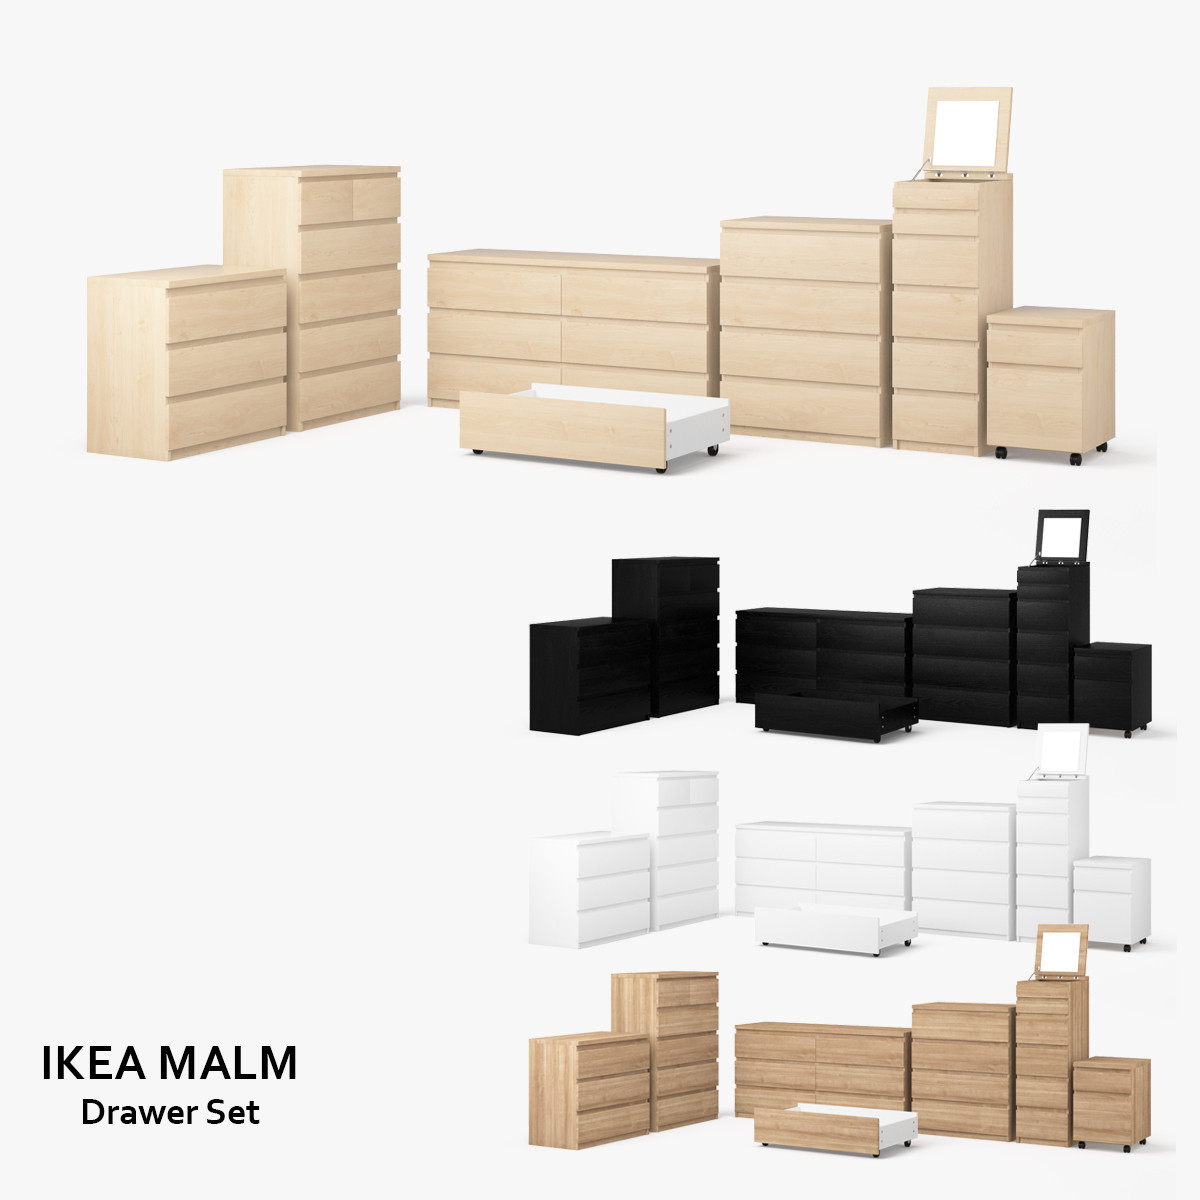 3d ikea malm drawer set for Ikea visualisation 3d